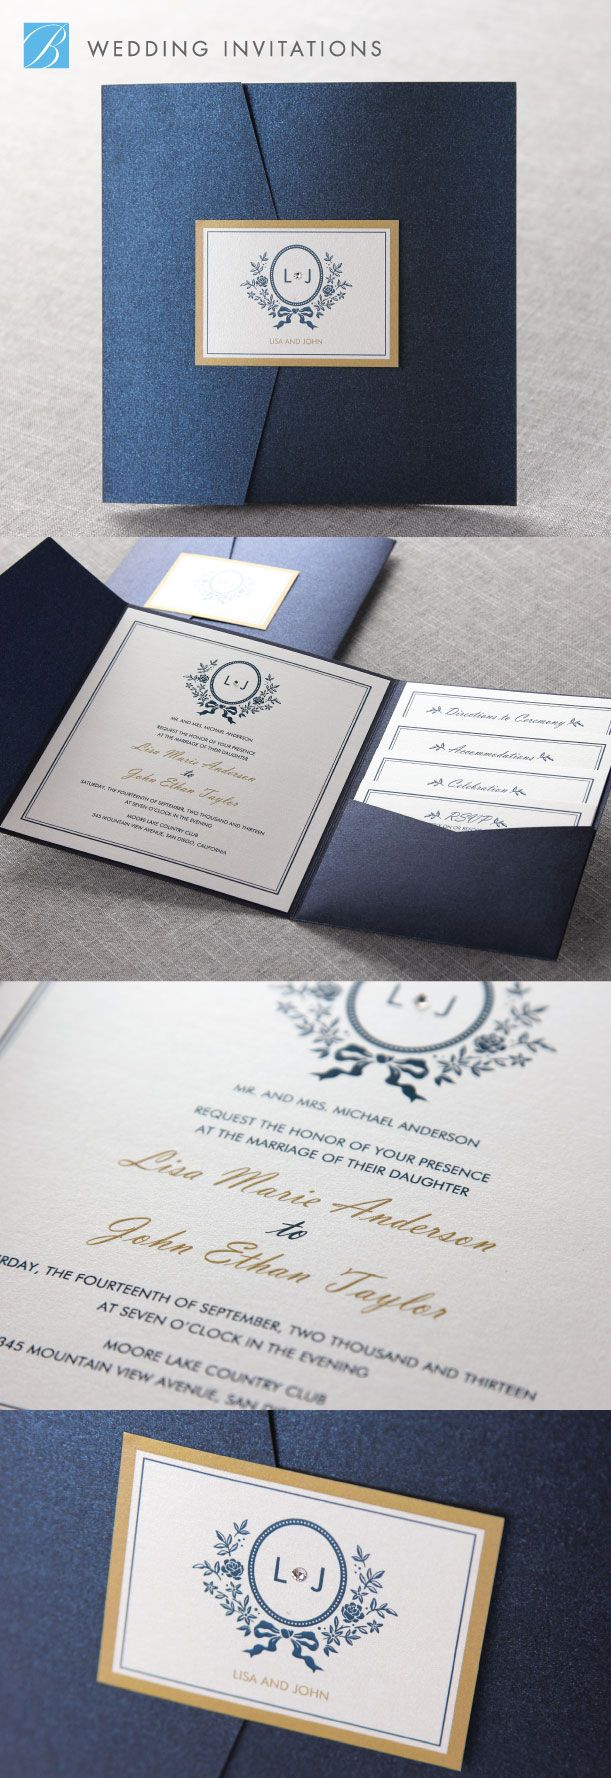 Old Fashioned Romance 1 By B Wedding Invitations THIS IS THE ...